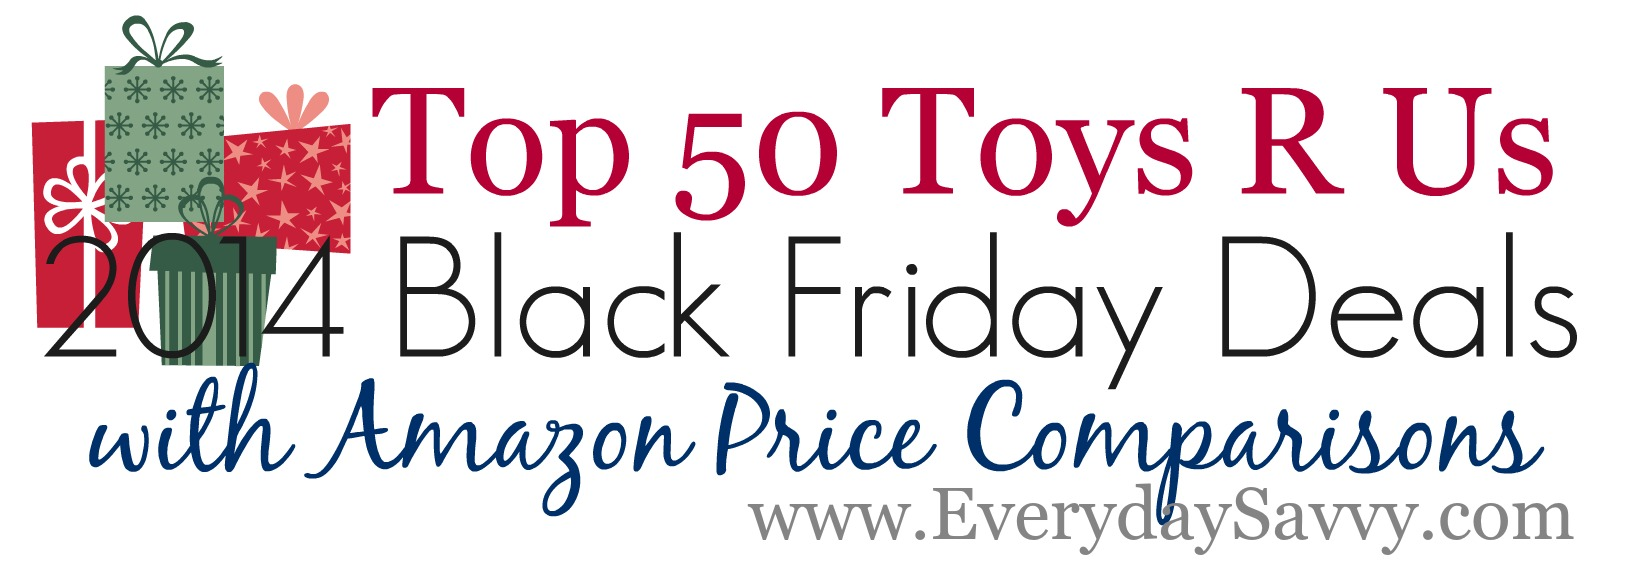 Top 50 Toys R Us Black Friday Deals and Amazon Price Comparisons